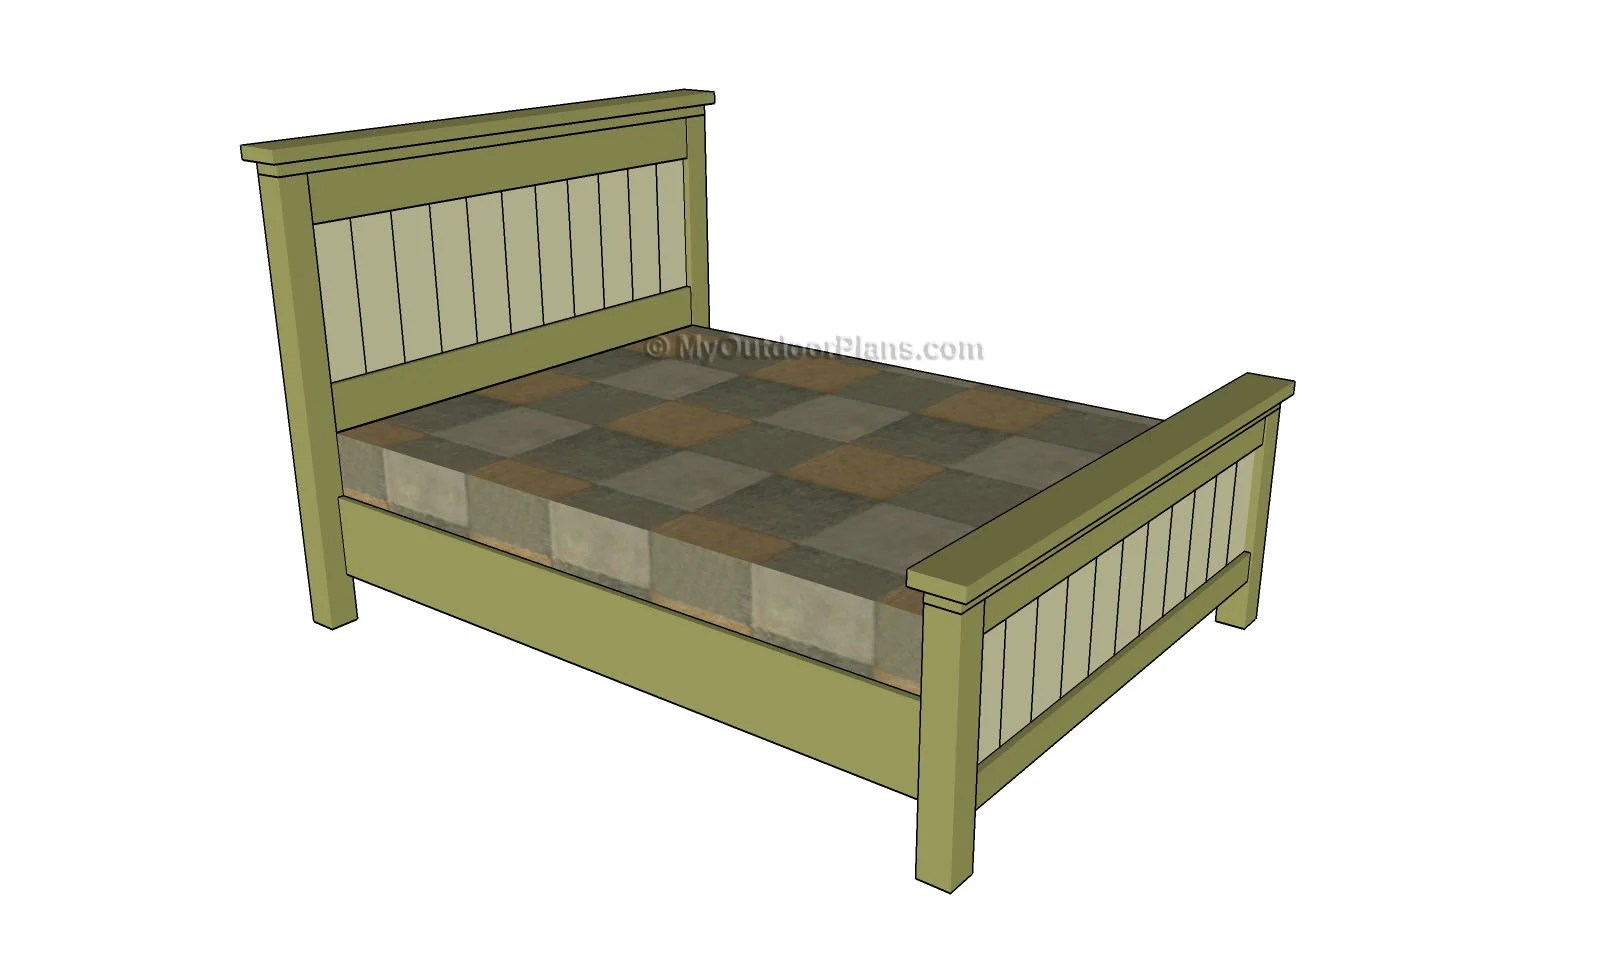 Size Of Queen Bed Queen Size Bed Plans Myoutdoorplans Free Woodworking Plans And